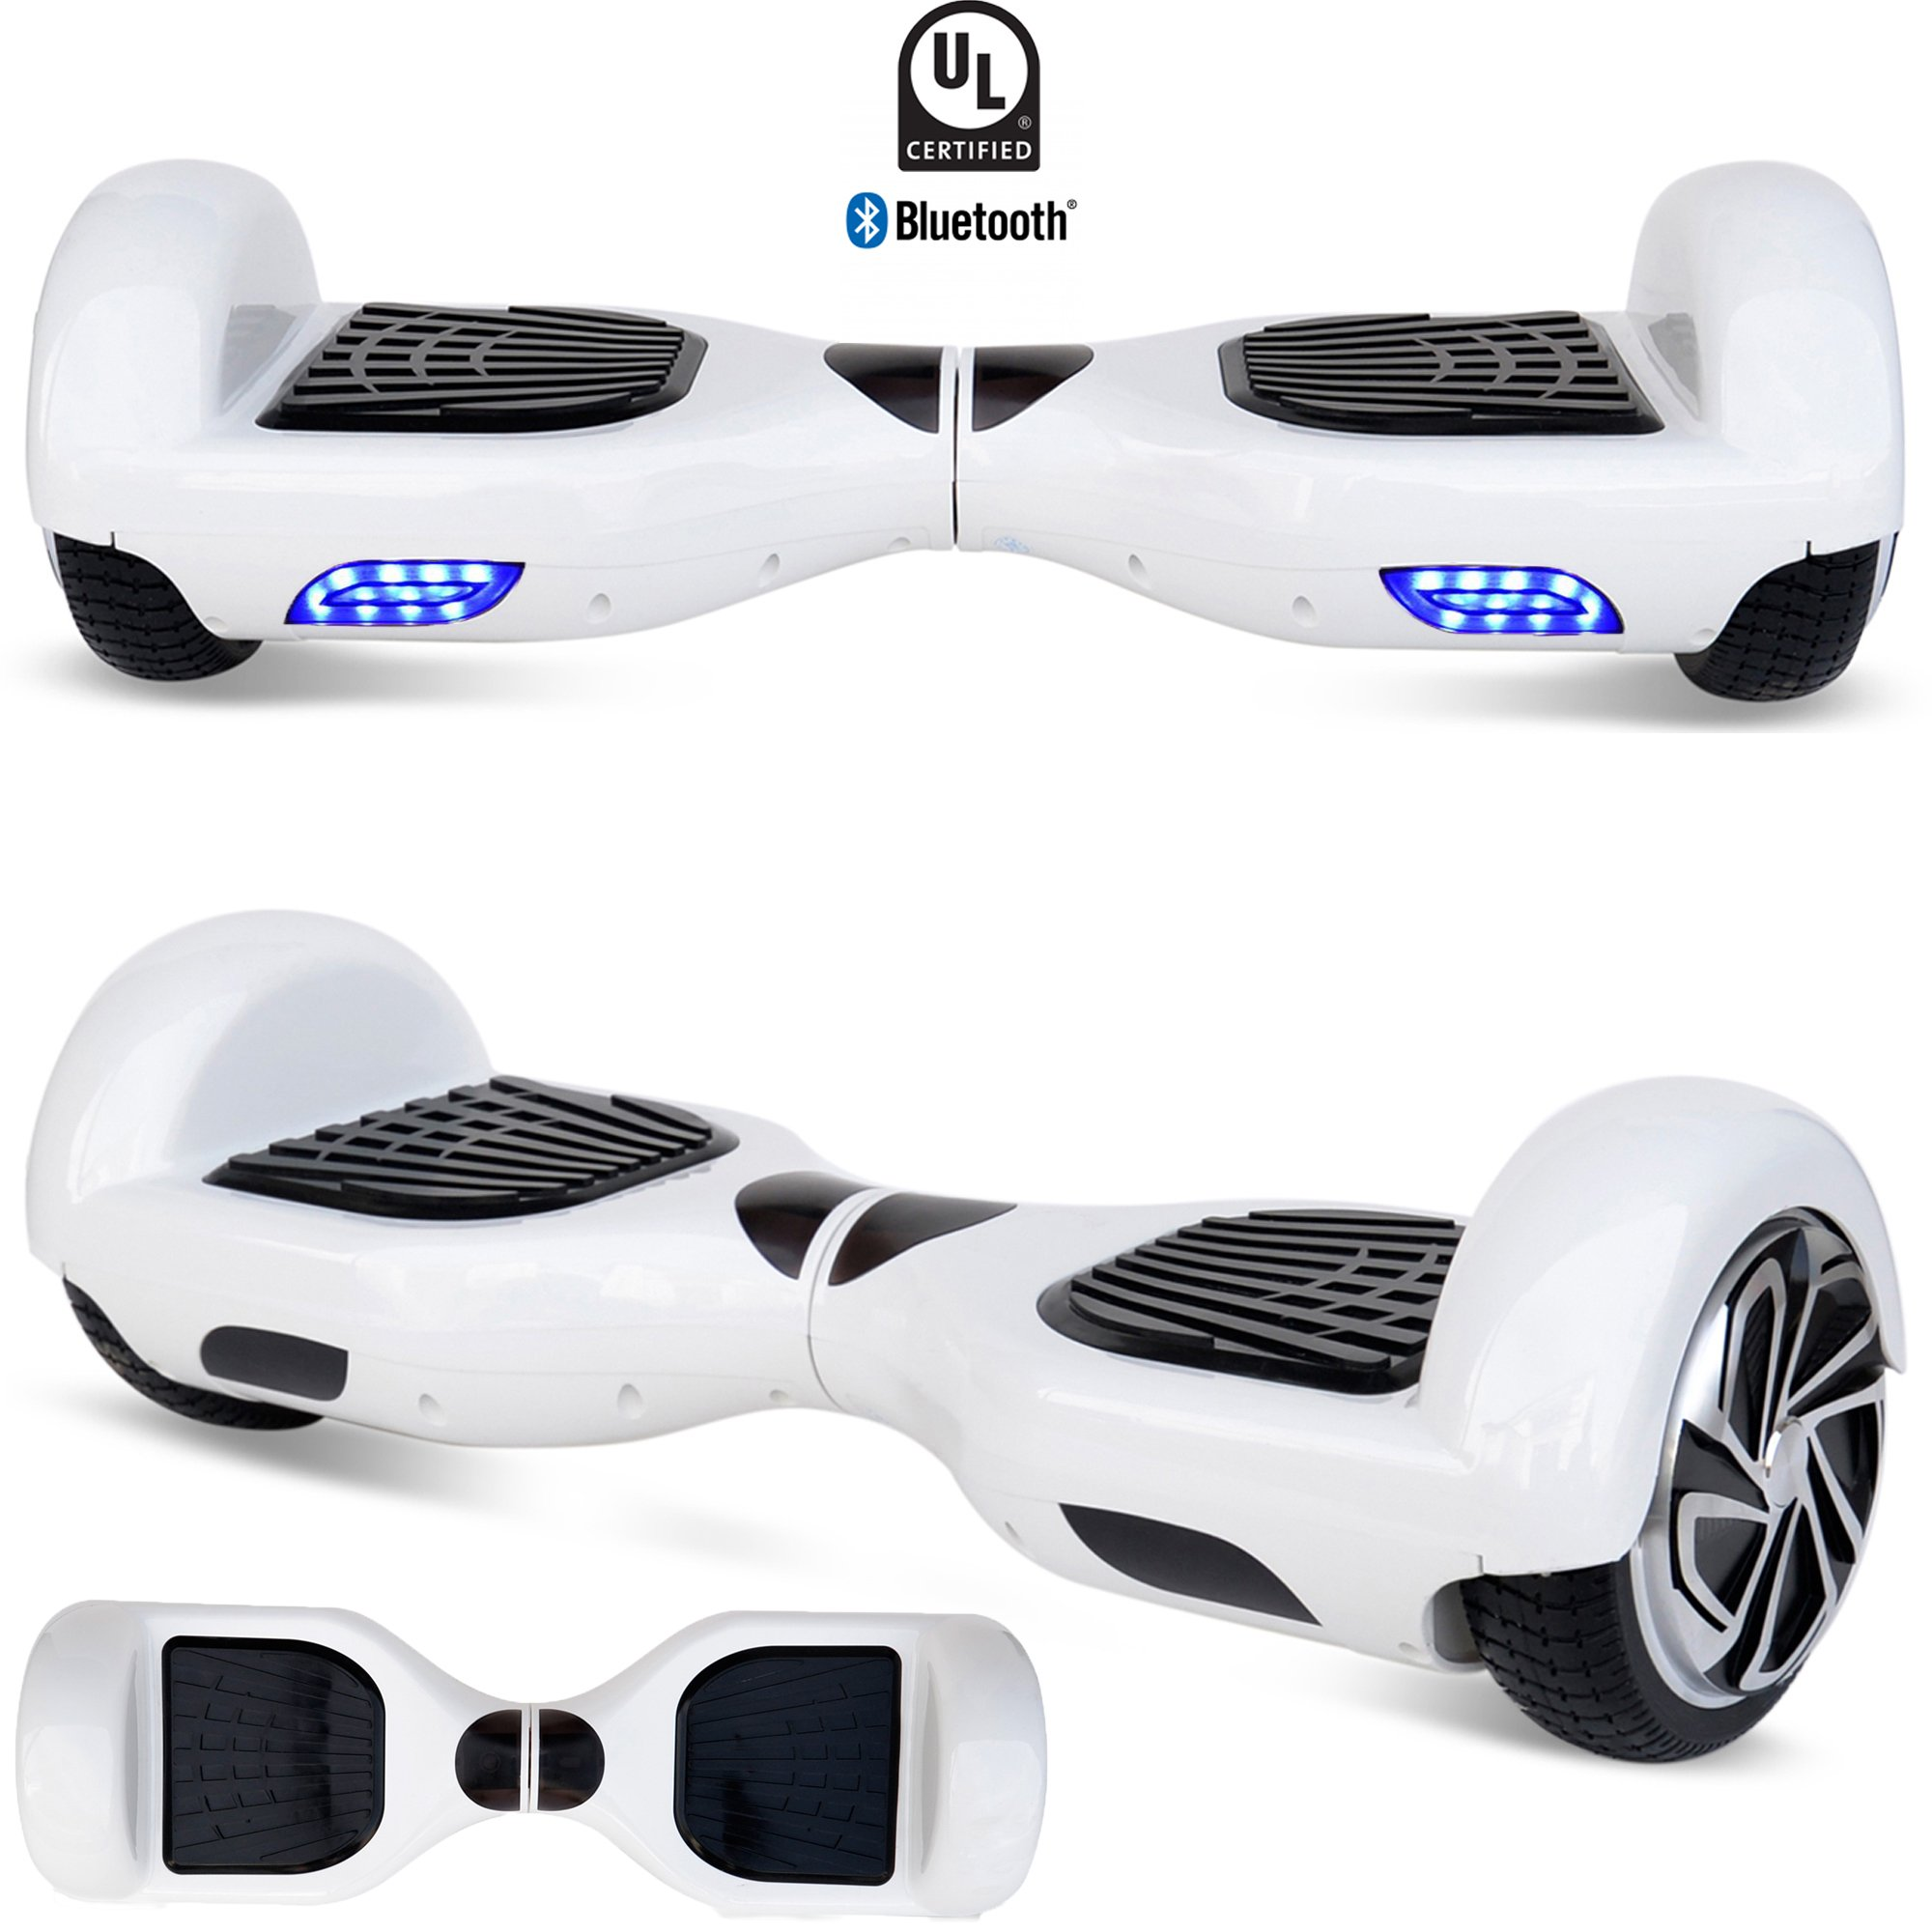 6.5'' HoverBoard Electric Scooter Smart Self-Balancing Wheels Hover Board With Built-in Bluetooth Speaker UL2272 Certified (White) by BornTech